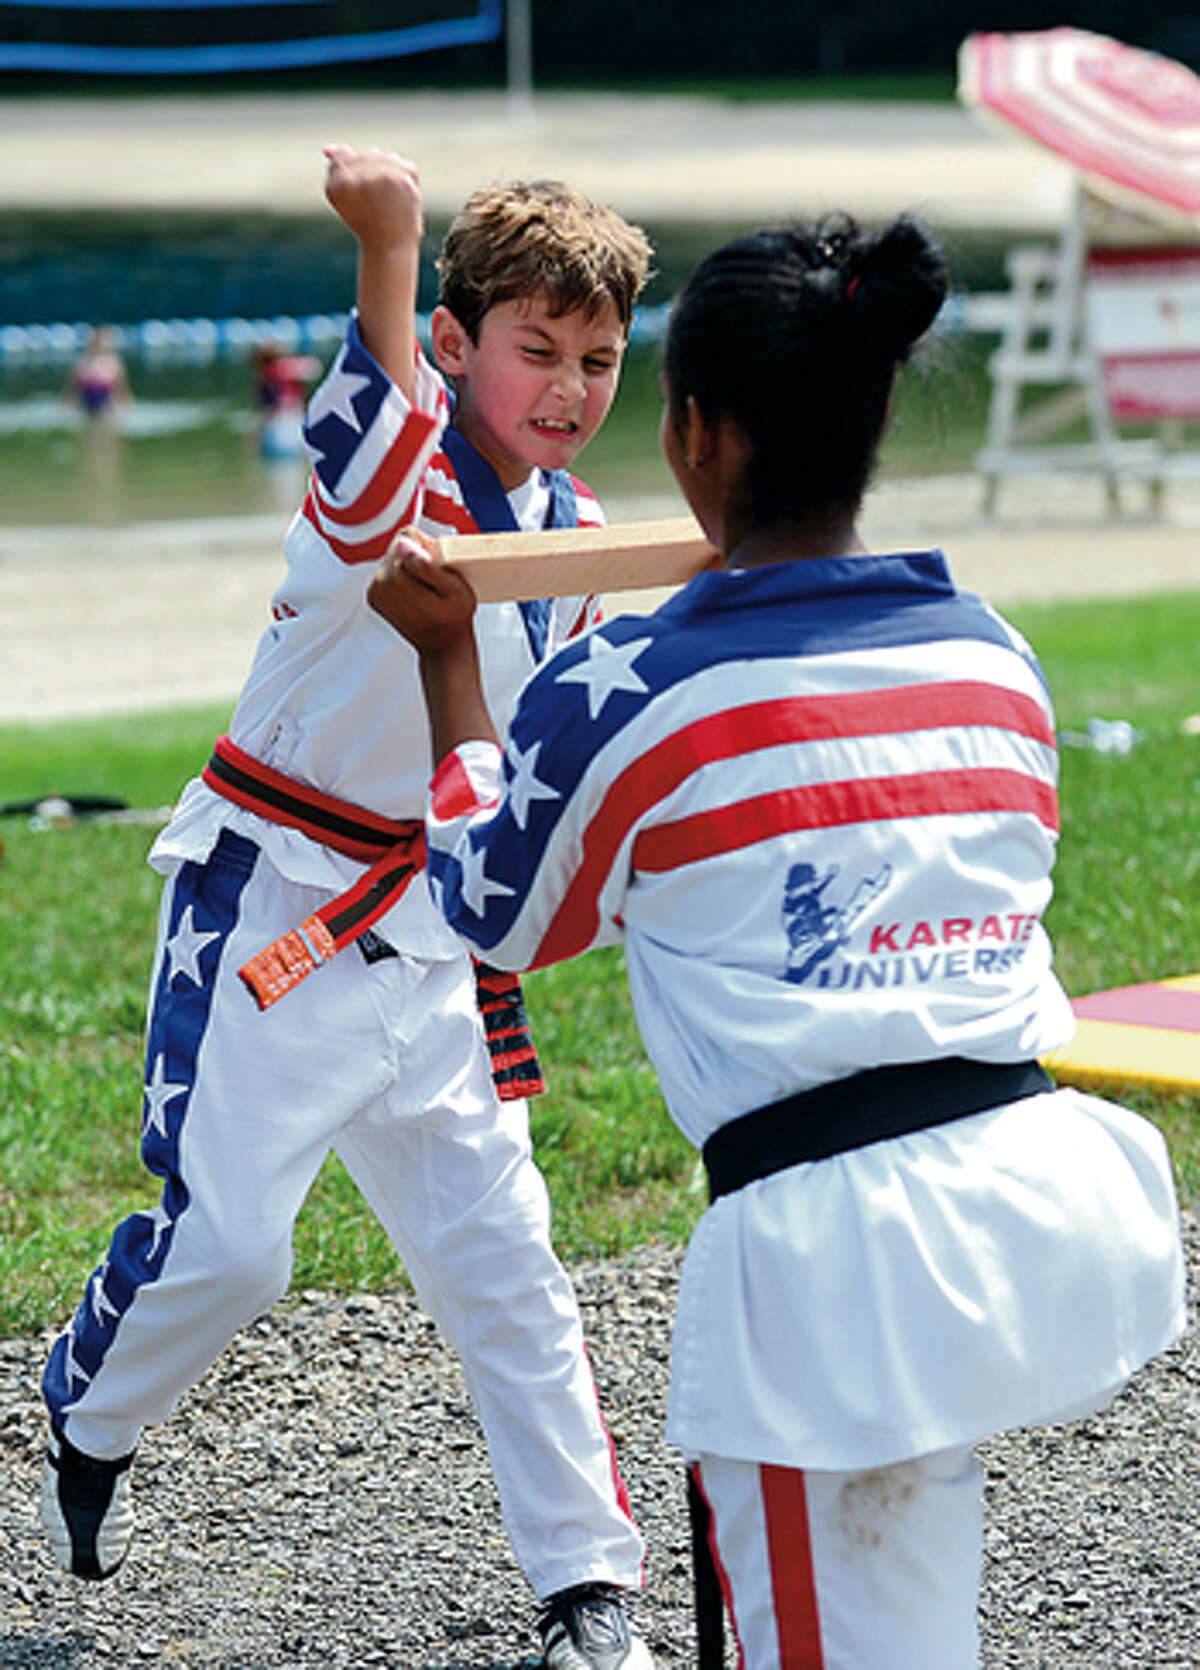 Gavin Fusco participates during the Kicks for Kids is a fundraiser by Karate Universe to help fight diabetes Saturday at Merwin Meadows in Wilton. Hour photo / Erik Trautmann